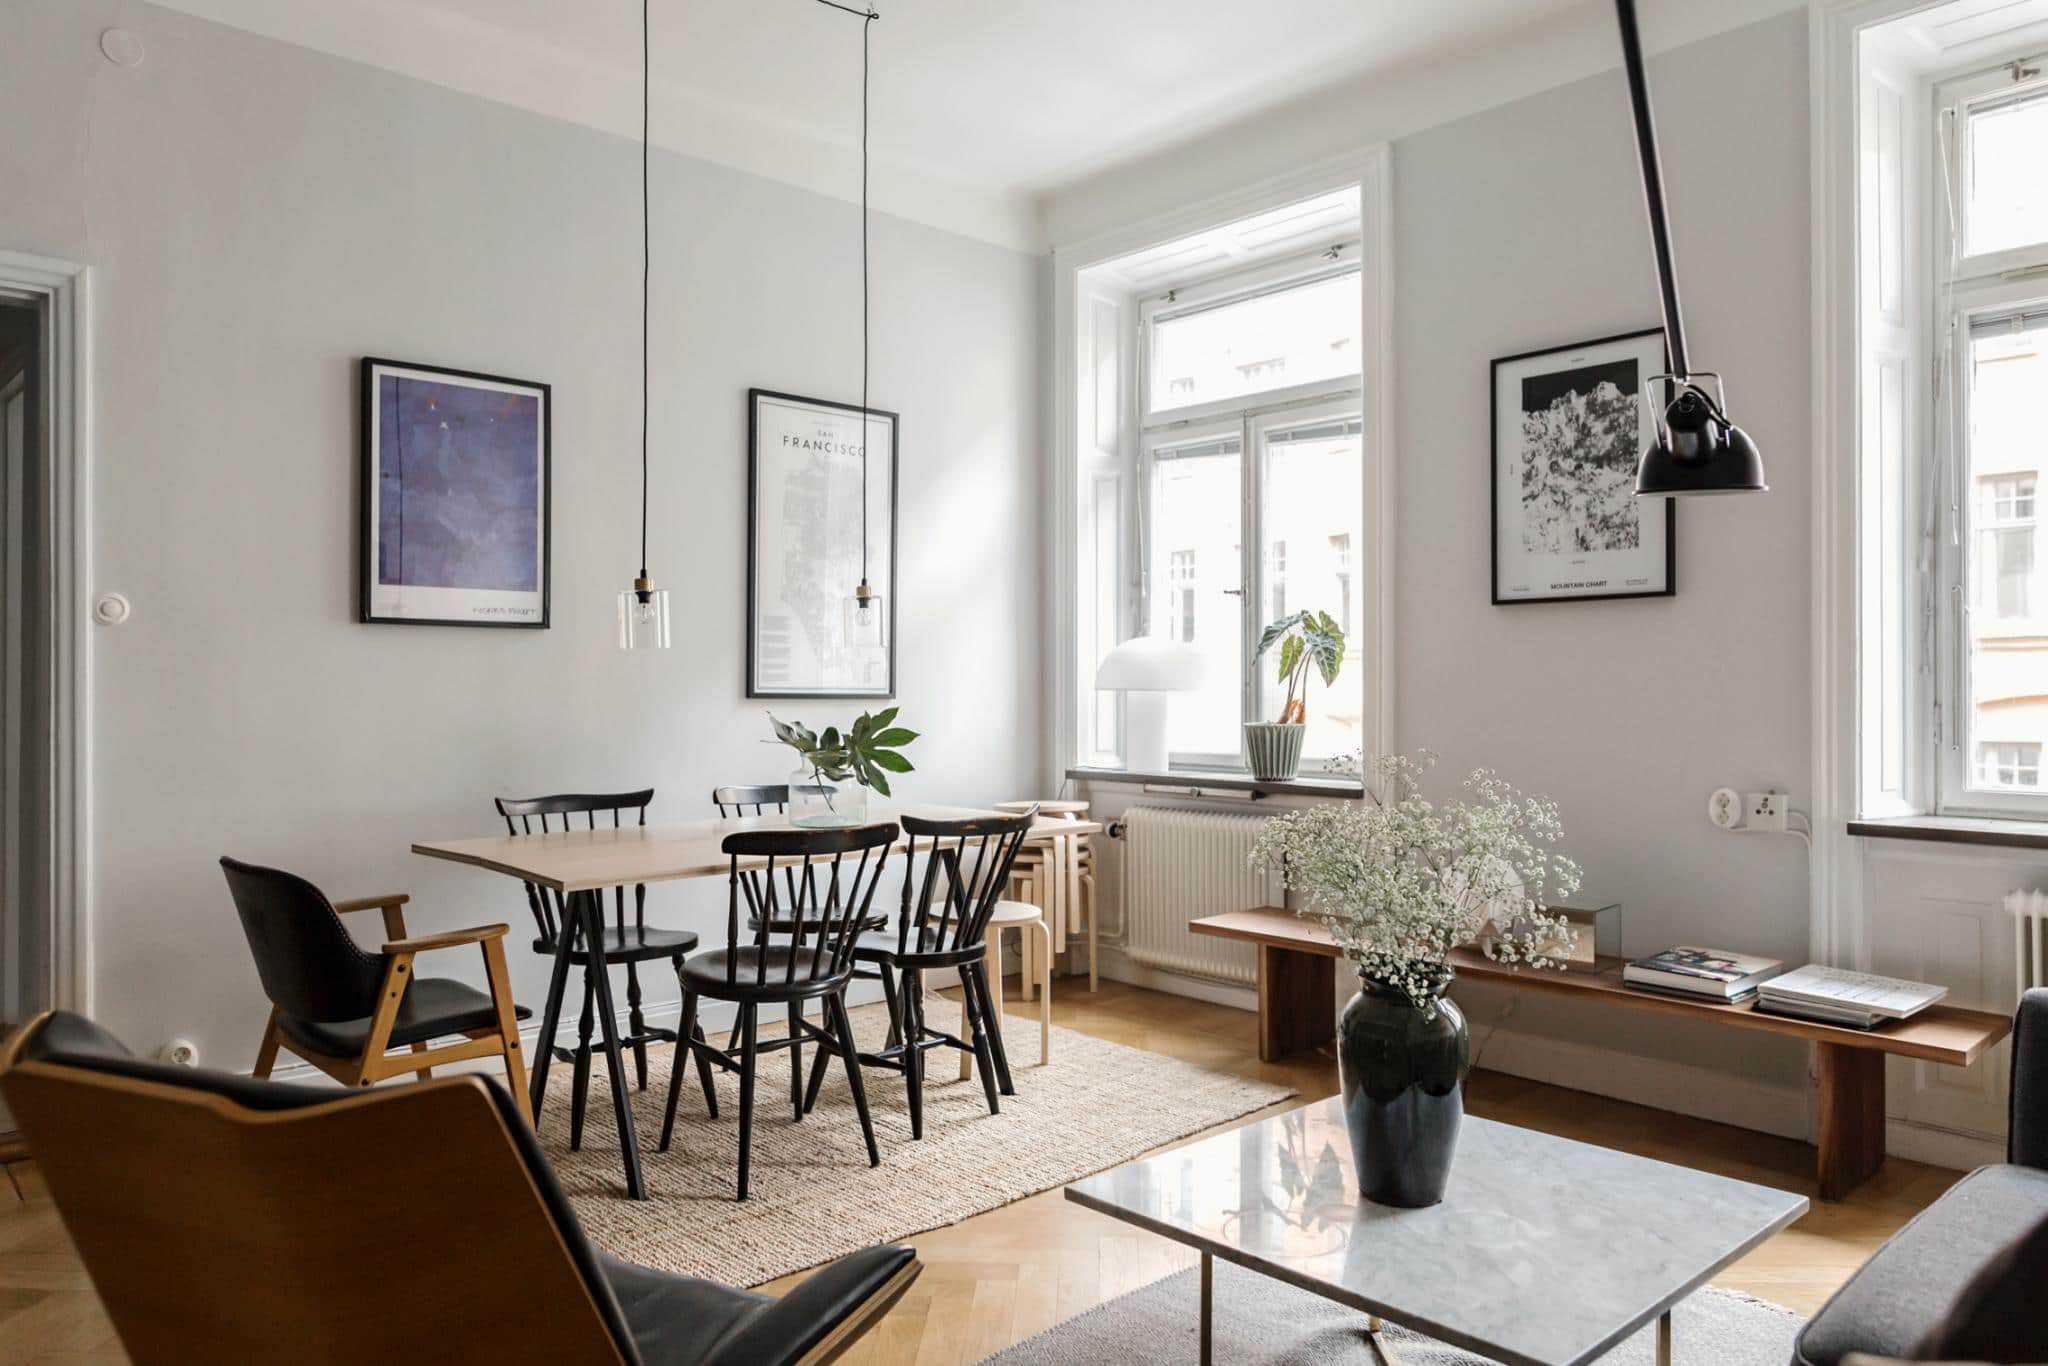 decor ideas for small living room small apartment living room interior design SMALL SPACE DECORATING IDEAS: A DREAMY SWEDISH APARTMENT IN STOCKHOLM. A  Scandinavian inspired living room with grey walls and big windows.